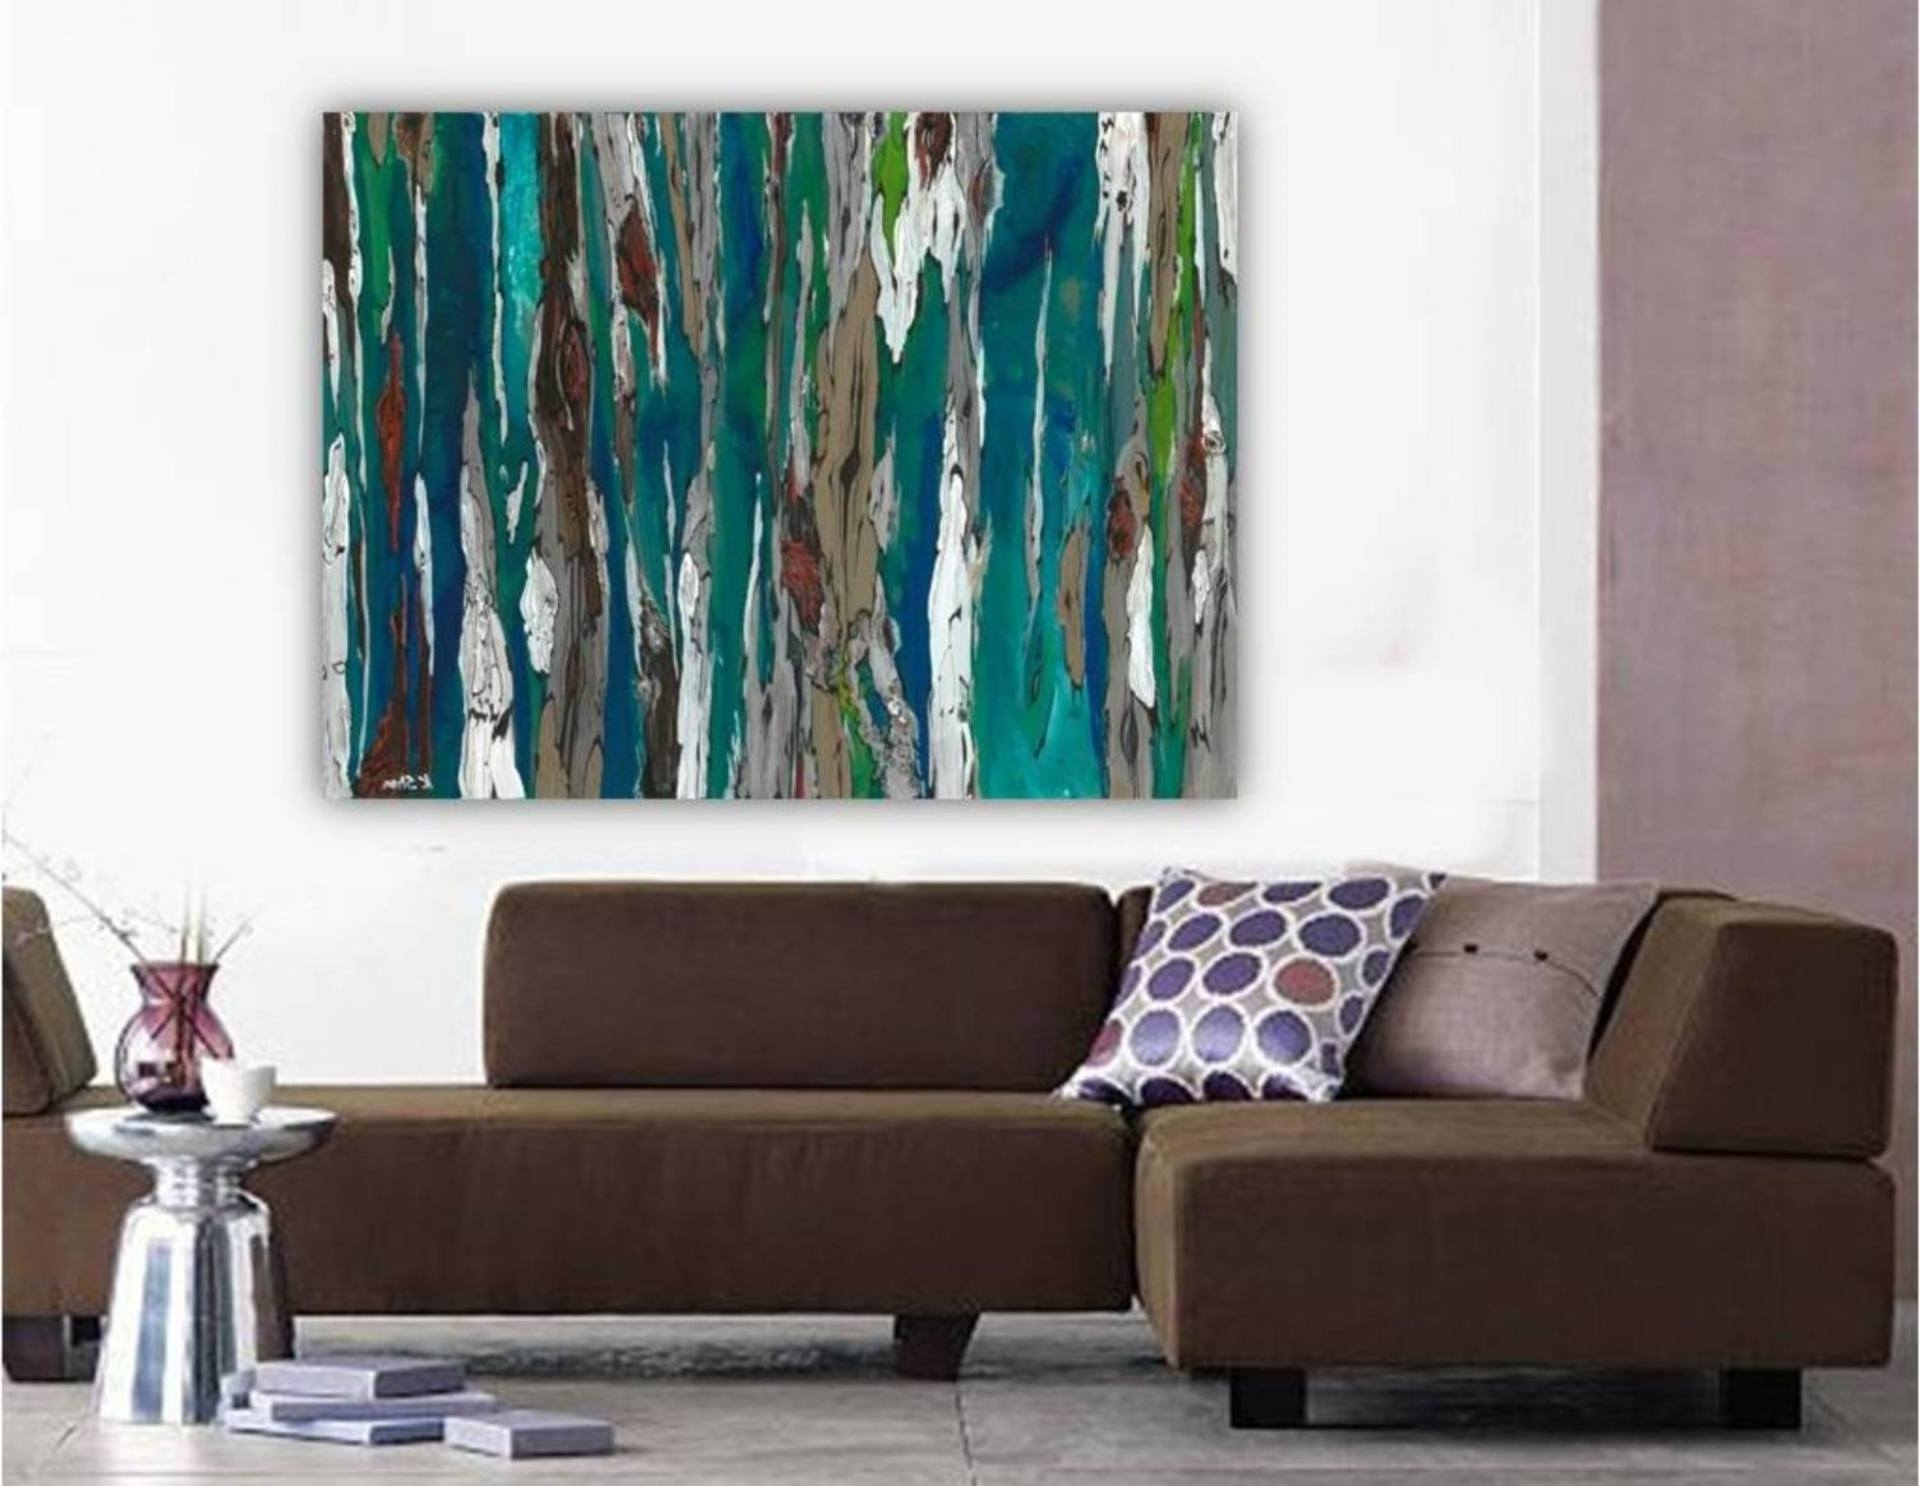 Saatchi Art: Large Contemporary Original Abstract Tree Landscape Regarding Most Popular Blue And Brown Abstract Wall Art (View 13 of 15)